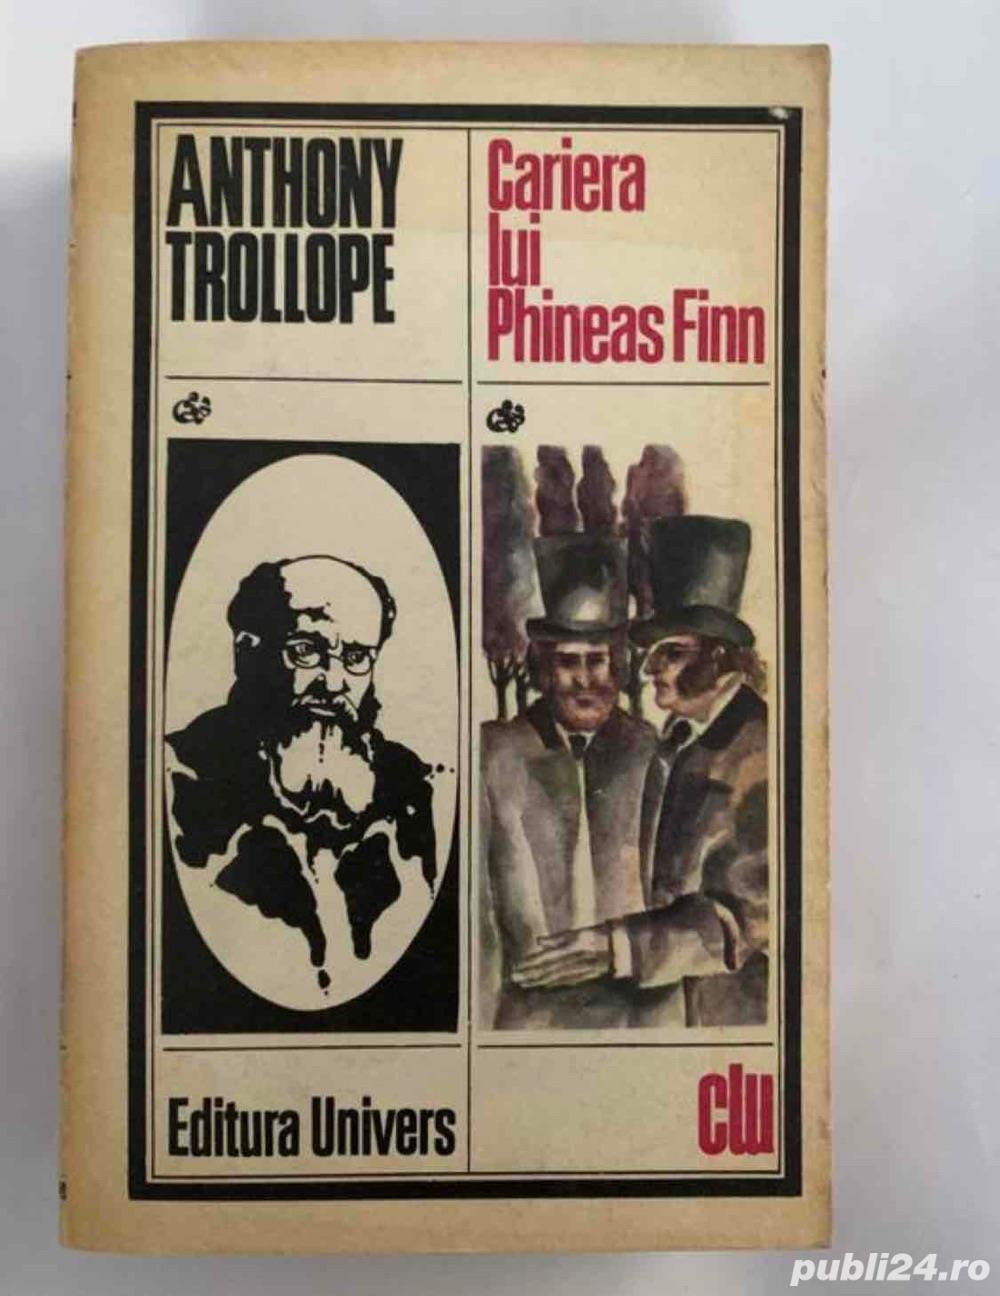 Cariera lui Phineas Finn, Anthony Trollope